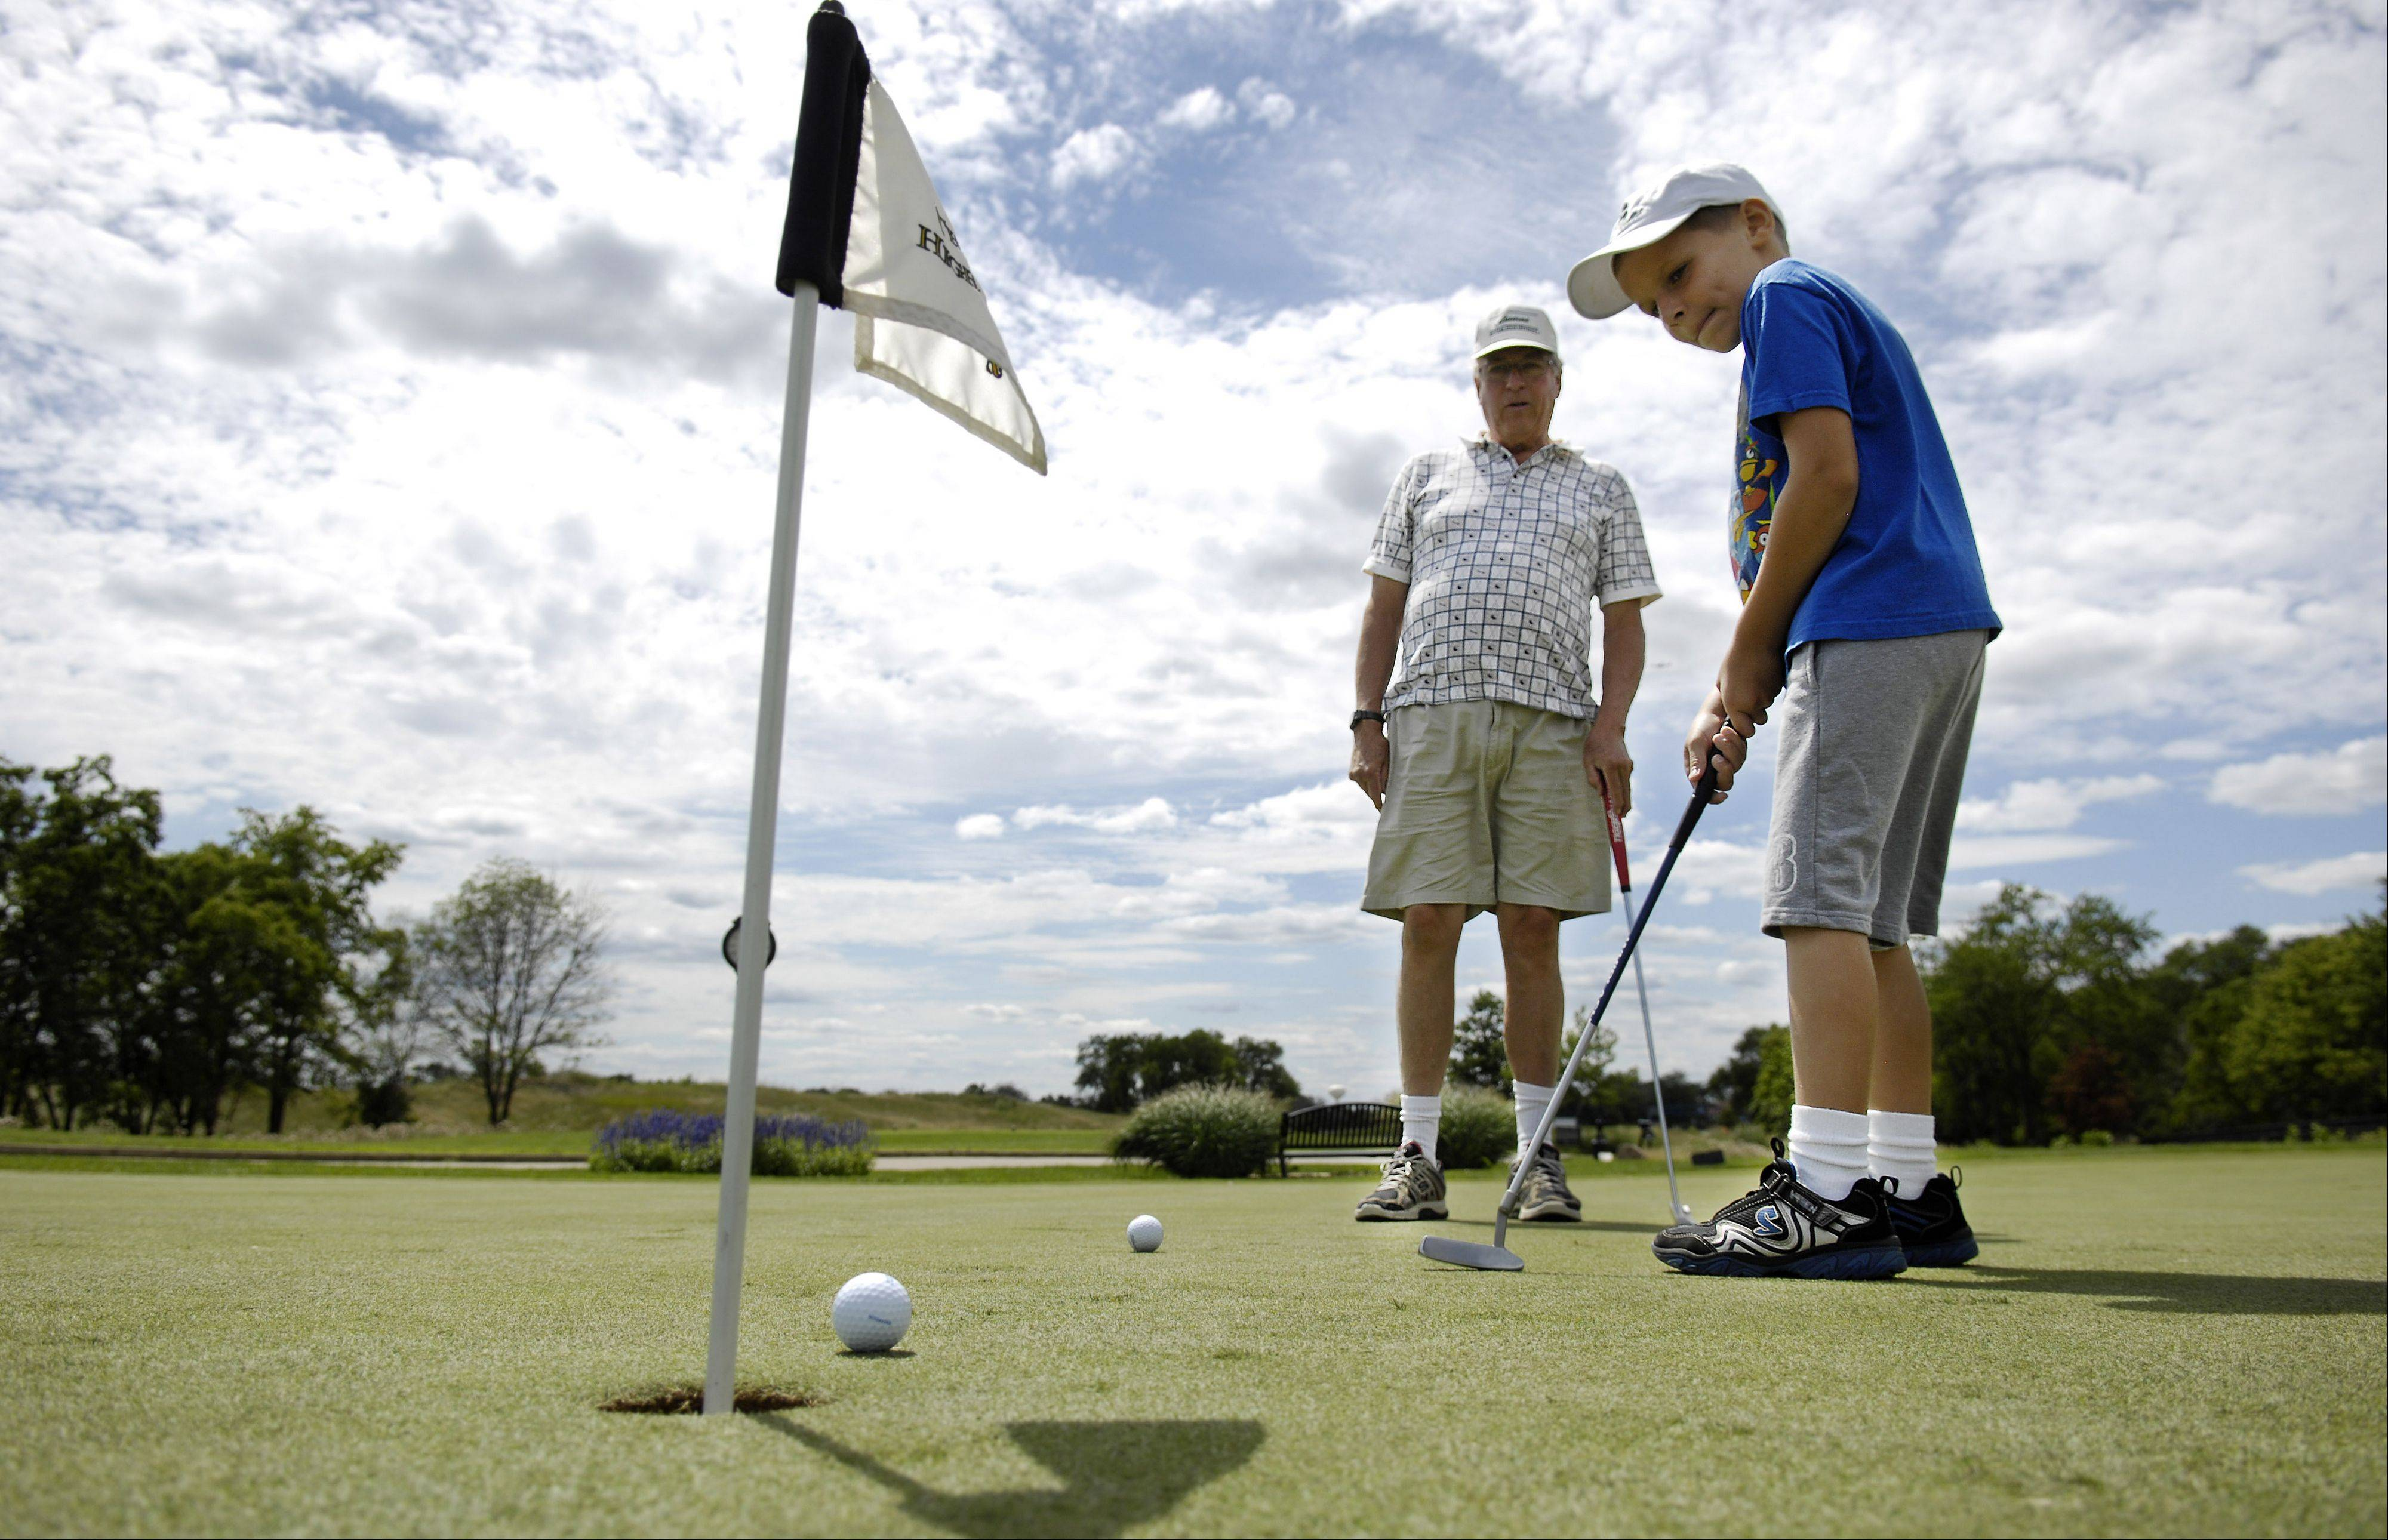 Scott Wagner of Elgin works with his grandson A.J. Csornok, 7, on his short game at The Highlands of Elgin Wednesday. A.J. is visiting from Rapid City, SD. A.J. has been learning to golf for a couple of years. They hit a bucket of balls on the driving range before moving on to the practice green.